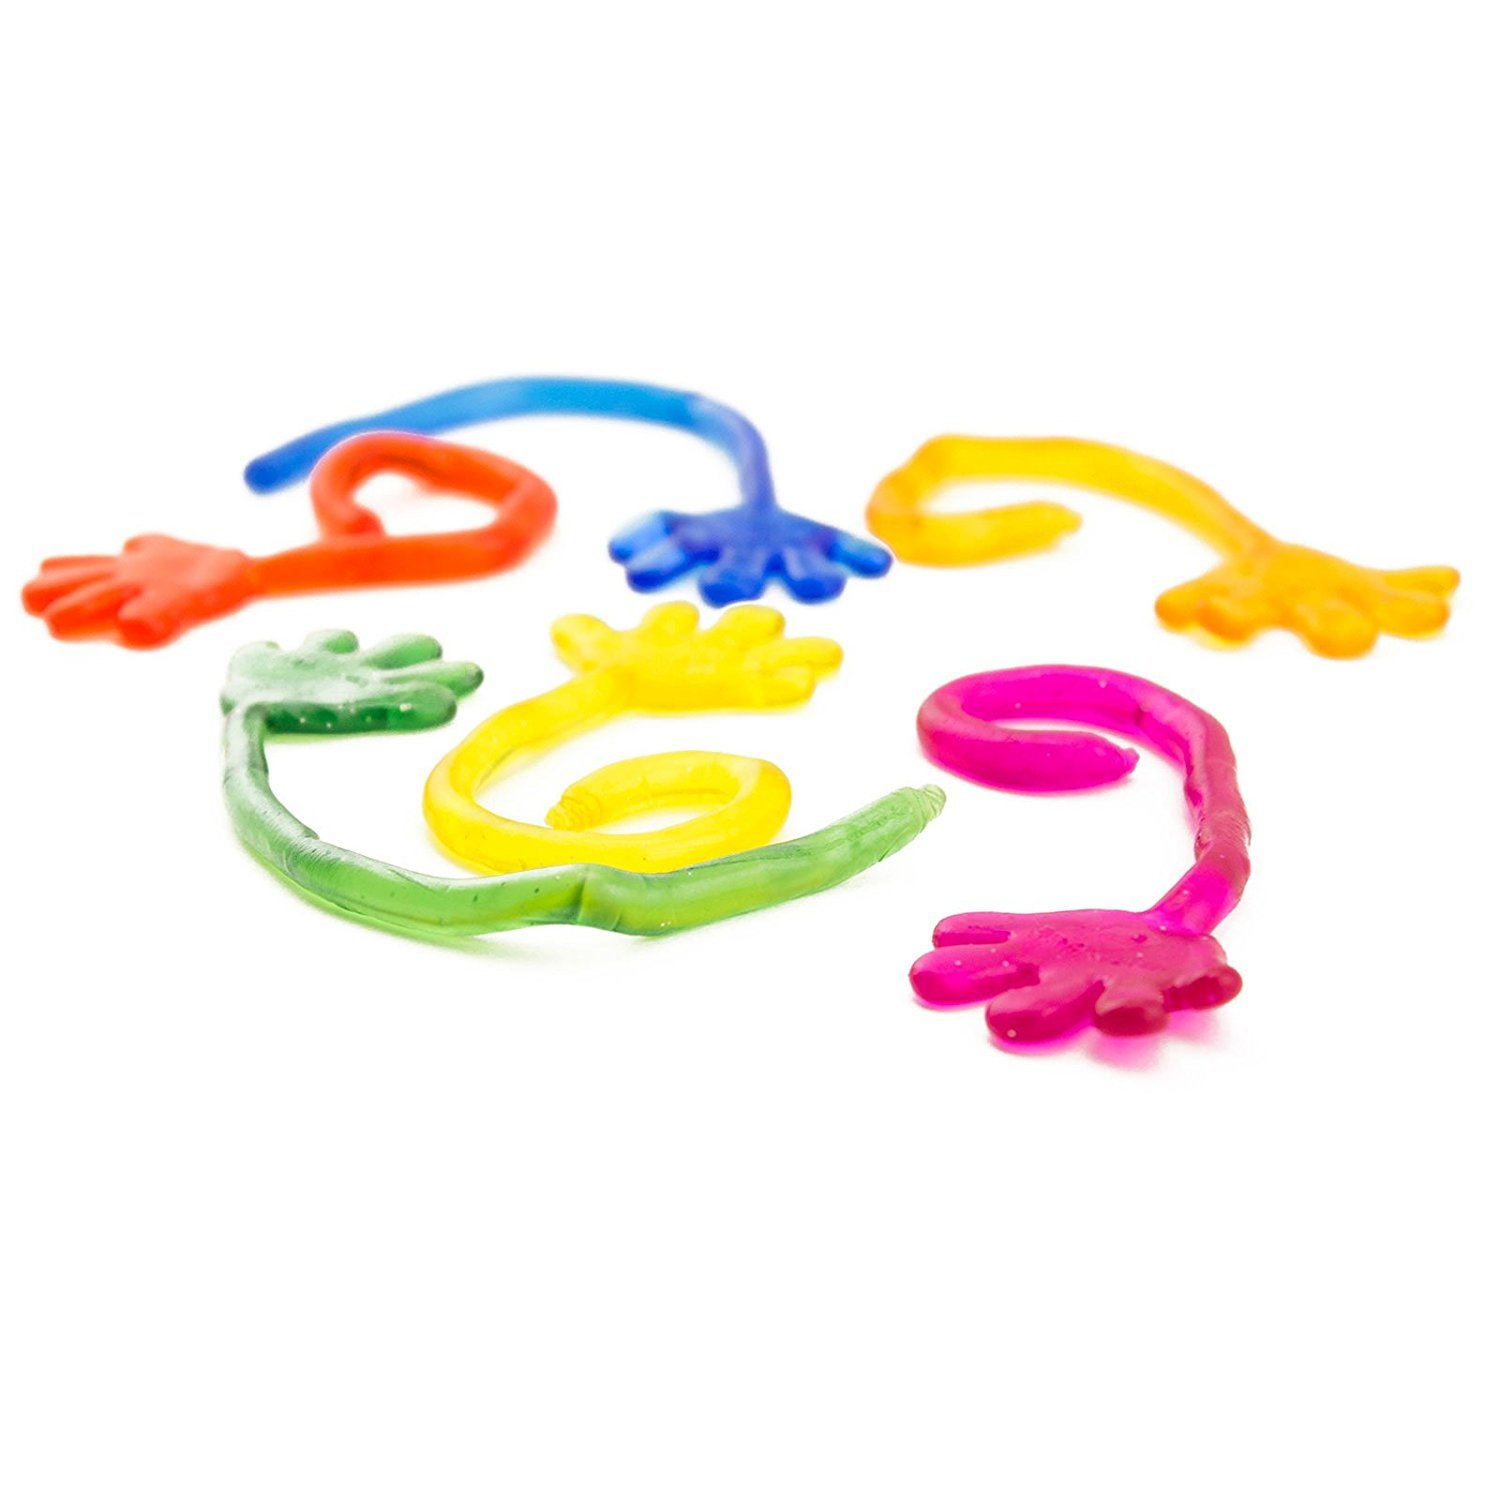 Tidal Storm Hydro Swirl Spinning Sprinkler Outdoor Toy Prime Time ...